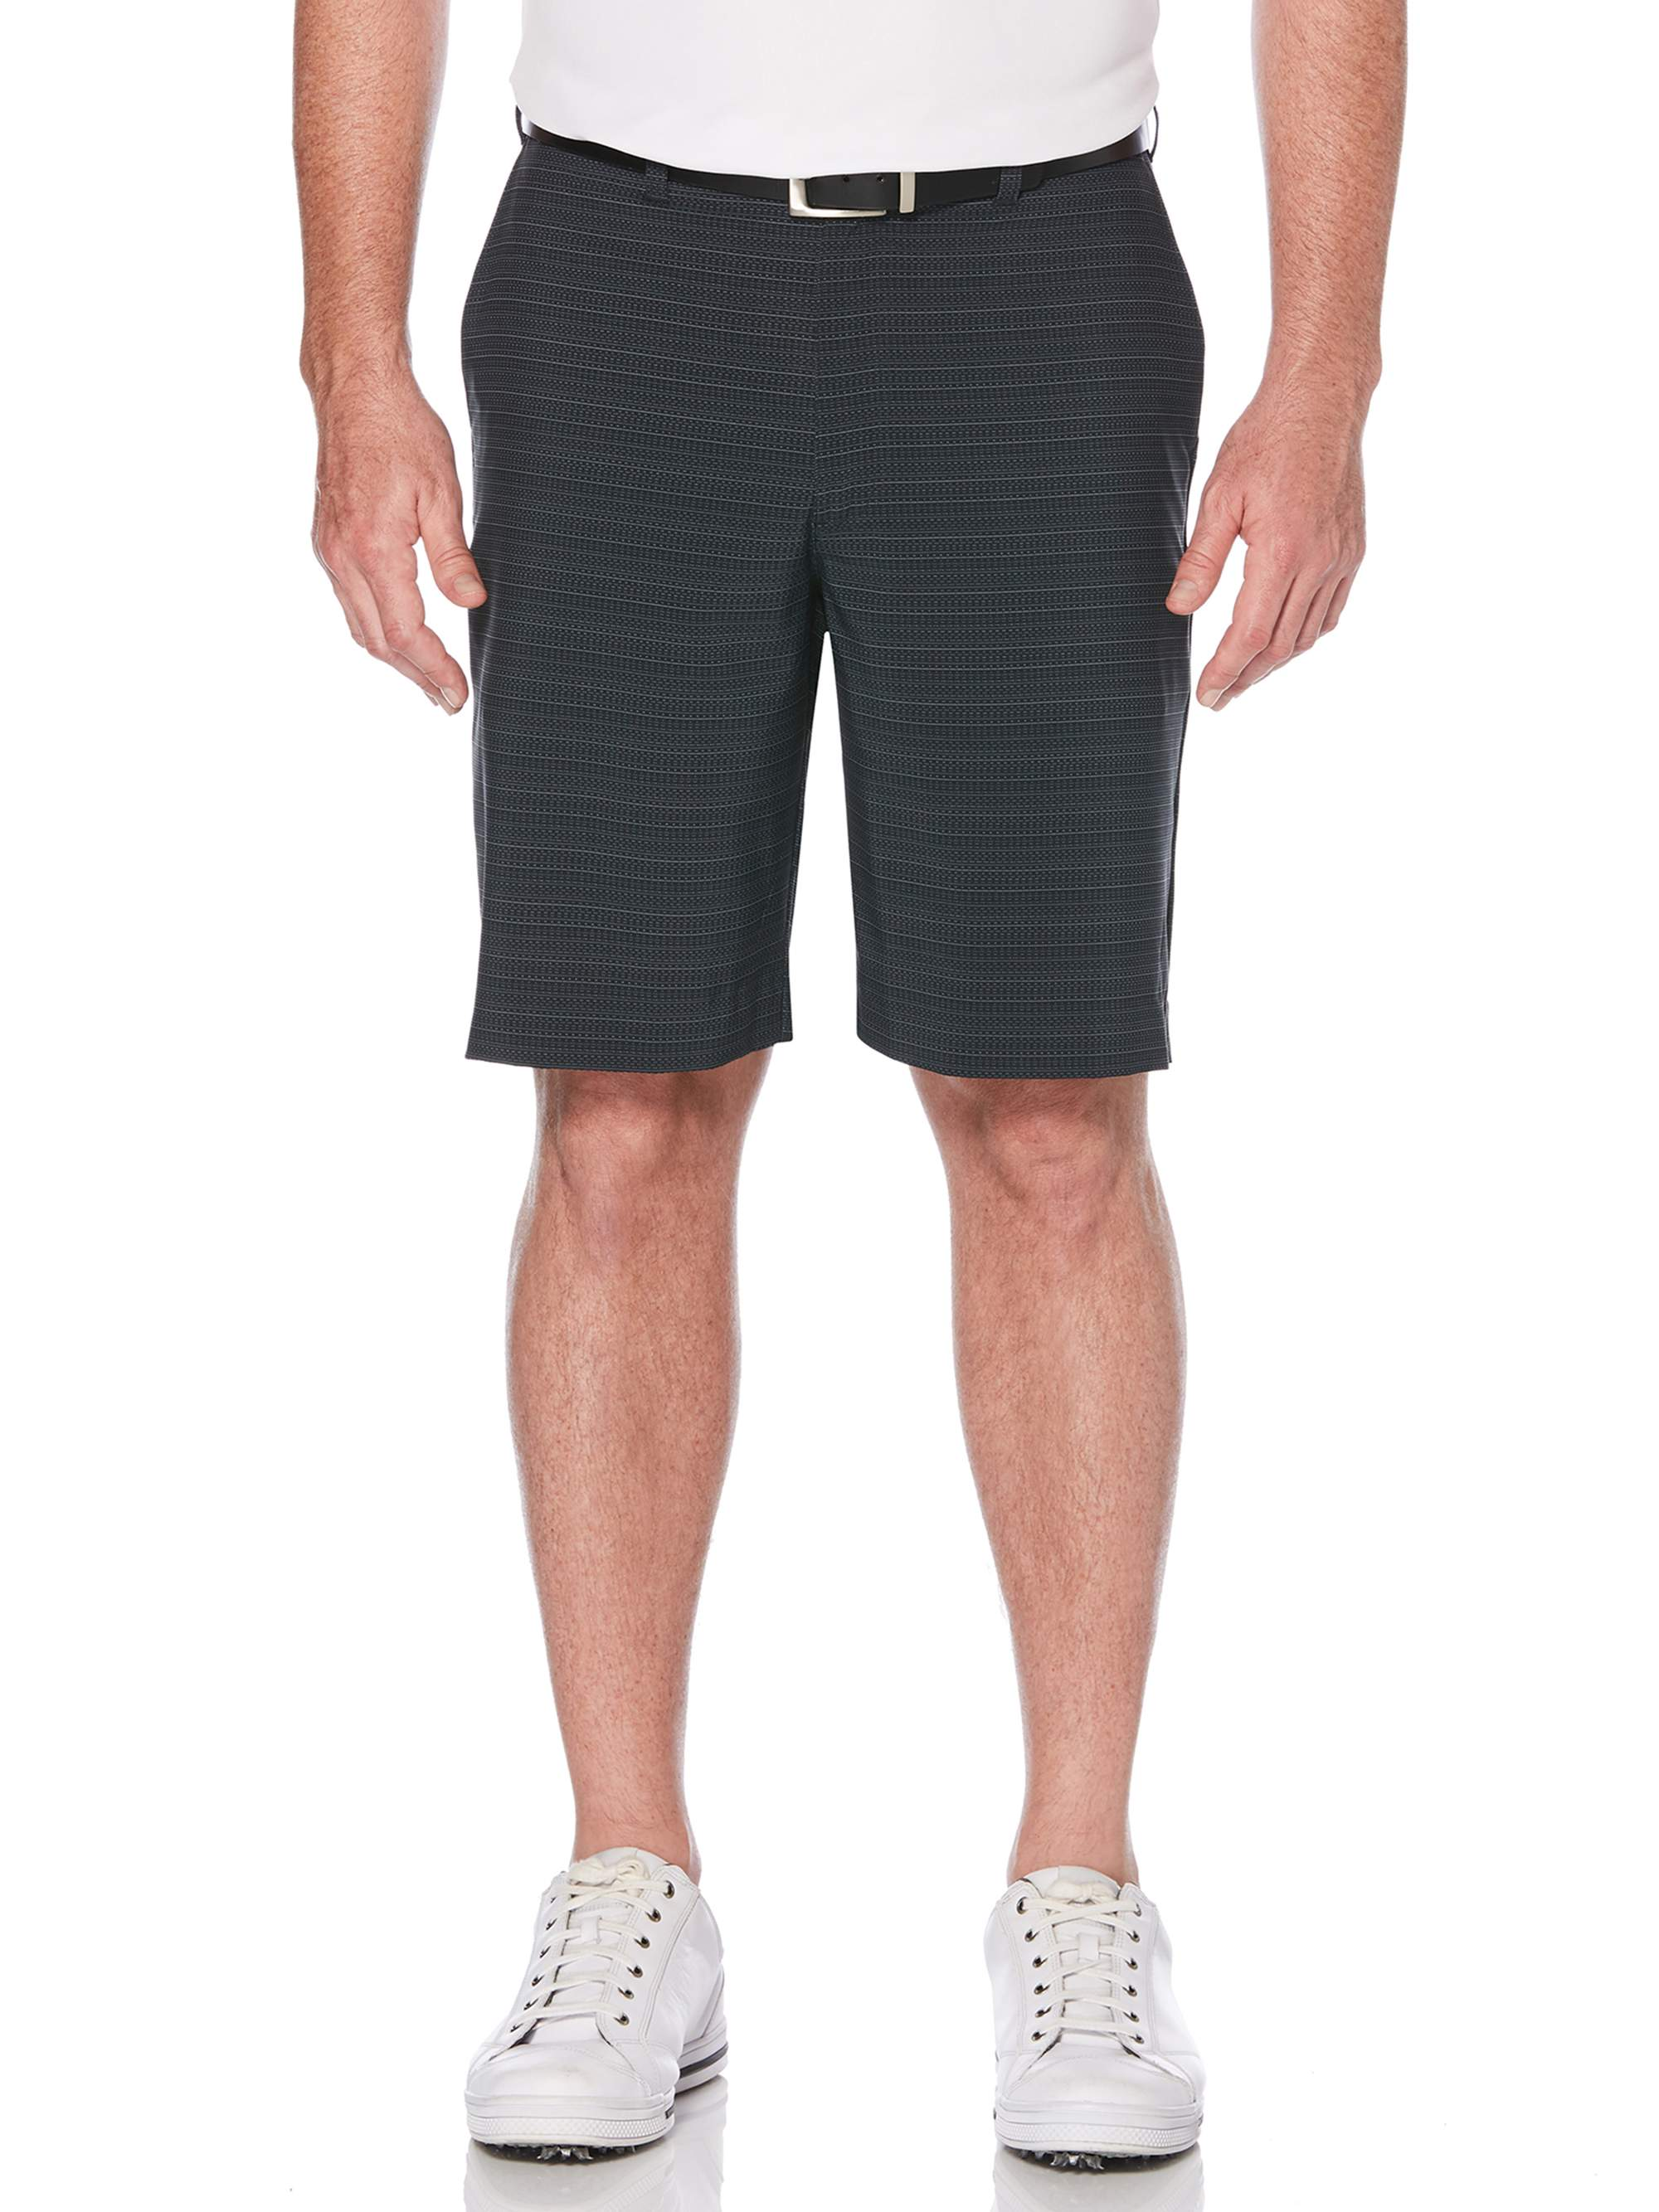 Men's Performance Textured Active Flex Waistband 4-Way Stretch Golf Short